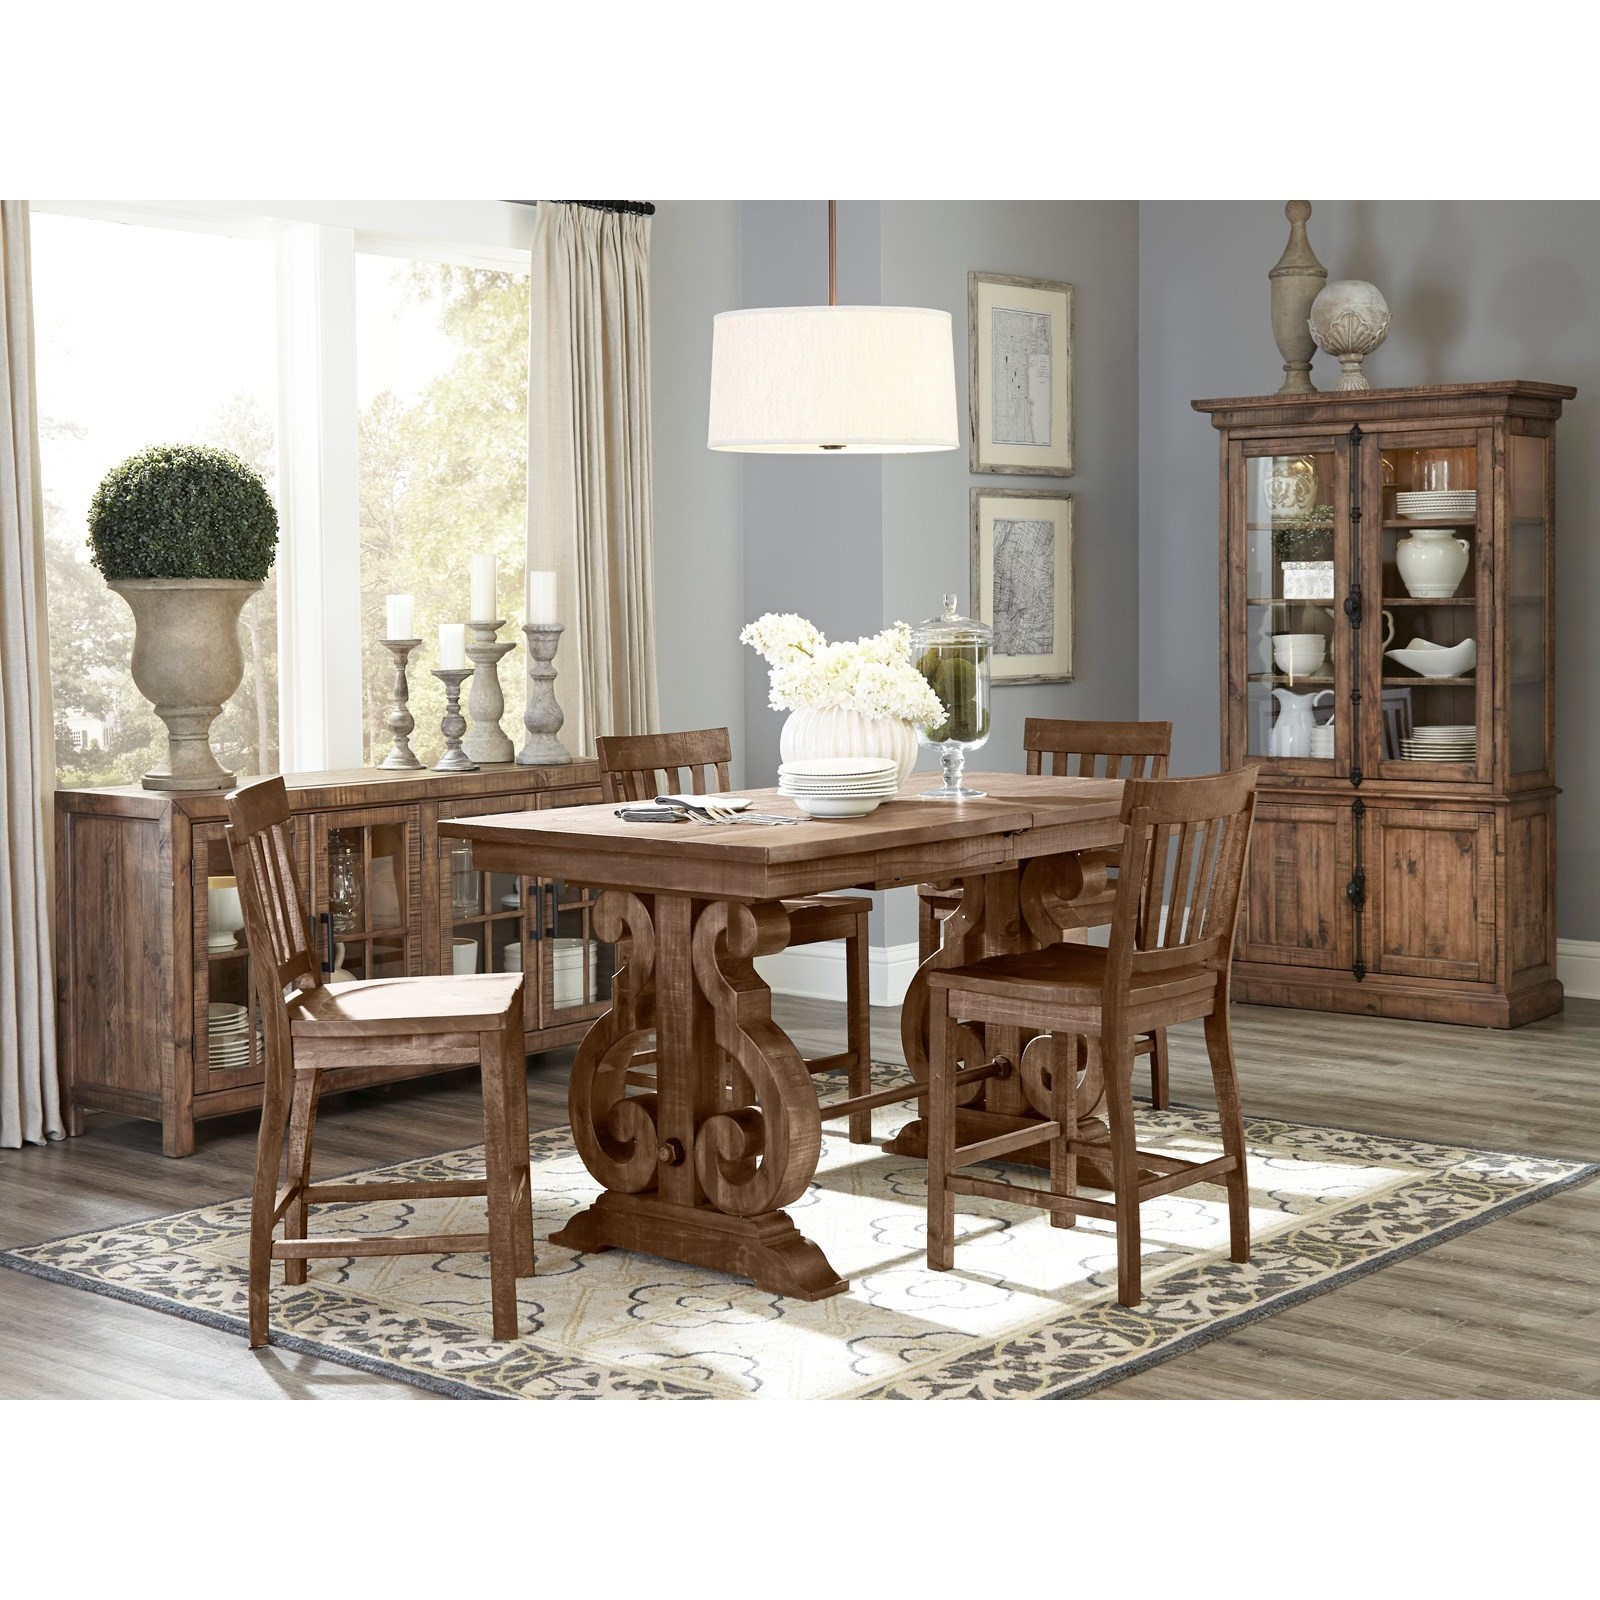 Willoughby Casual Dining Room Group By Magnussen Home